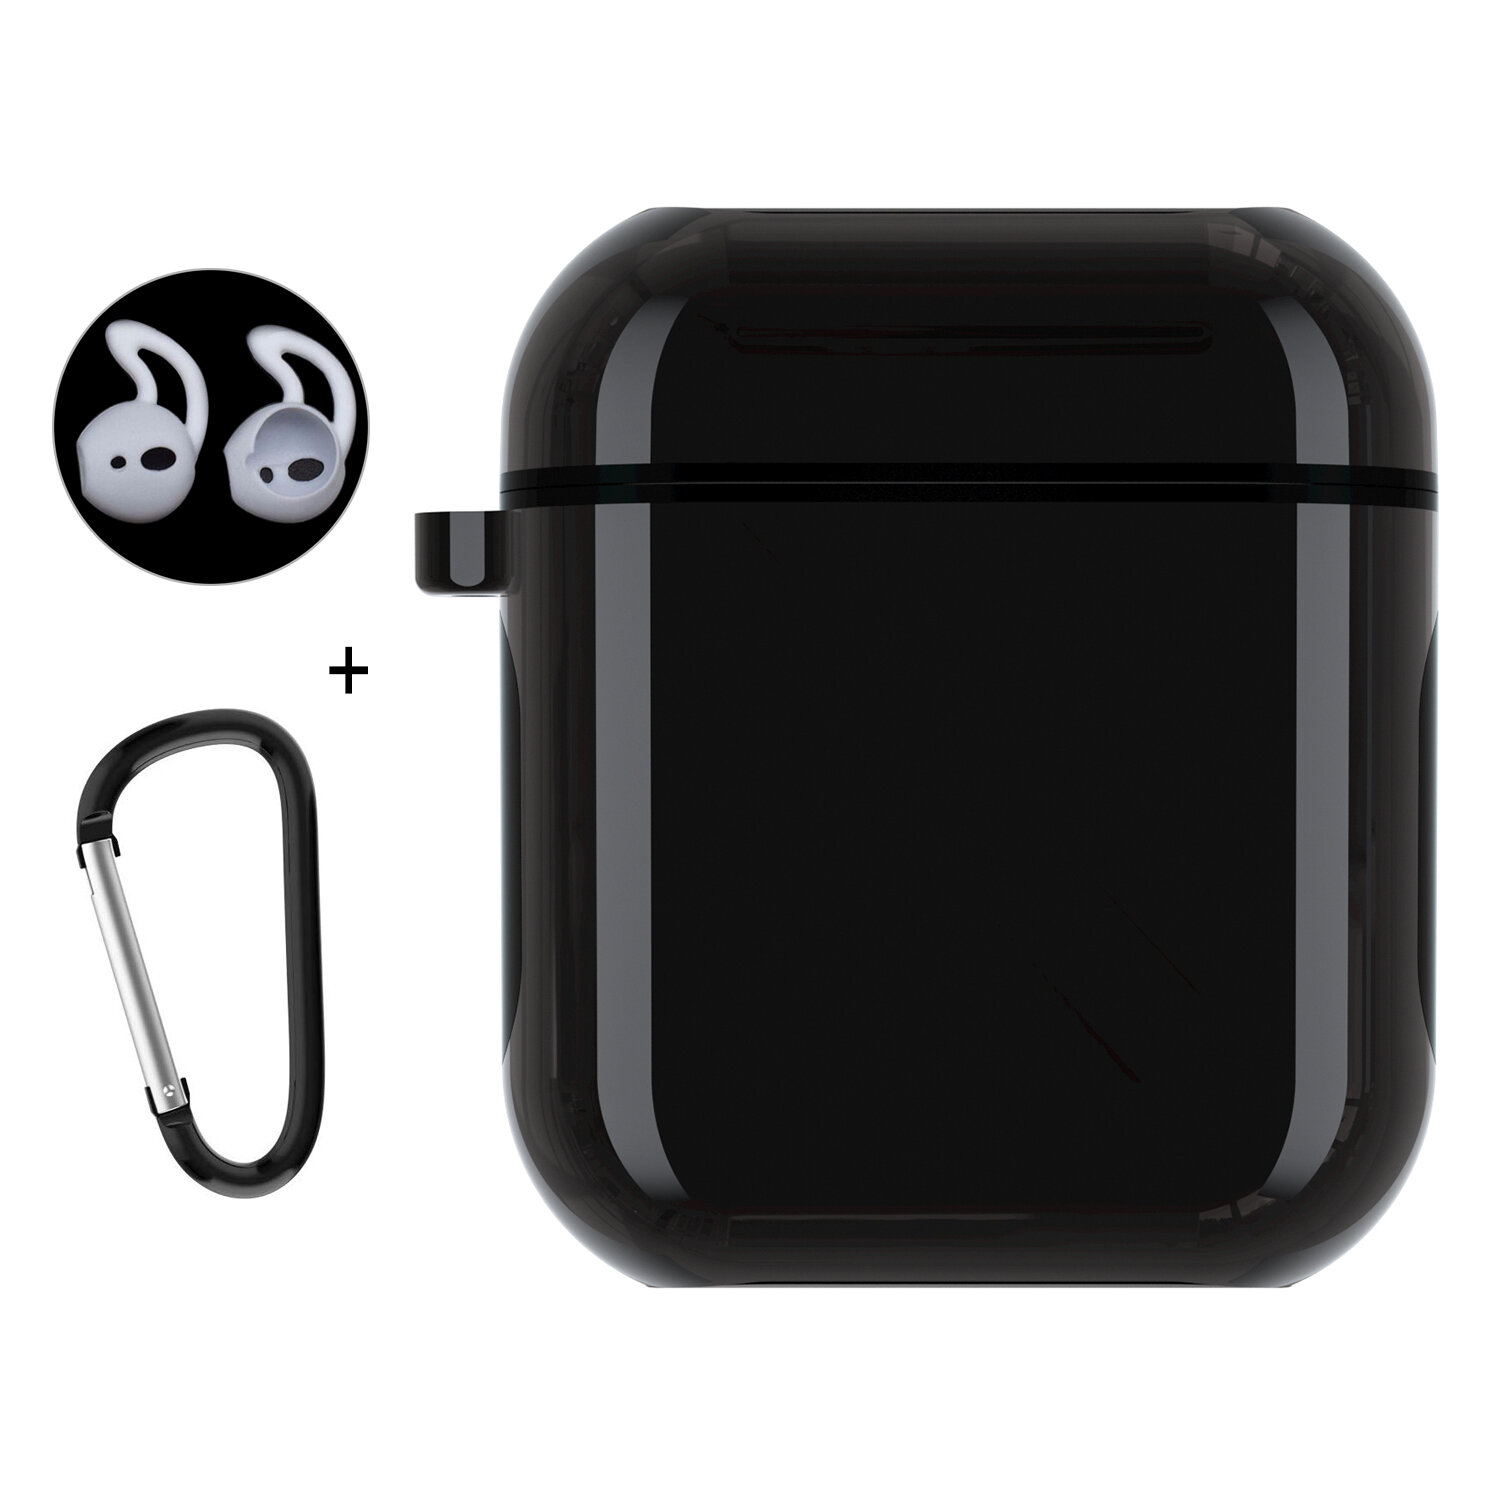 Enkay Dustproof Earphone PC Protective Case + Ear Tips + Anti-lost Hook For Apple AirPods 1 & Apple AirPods 2